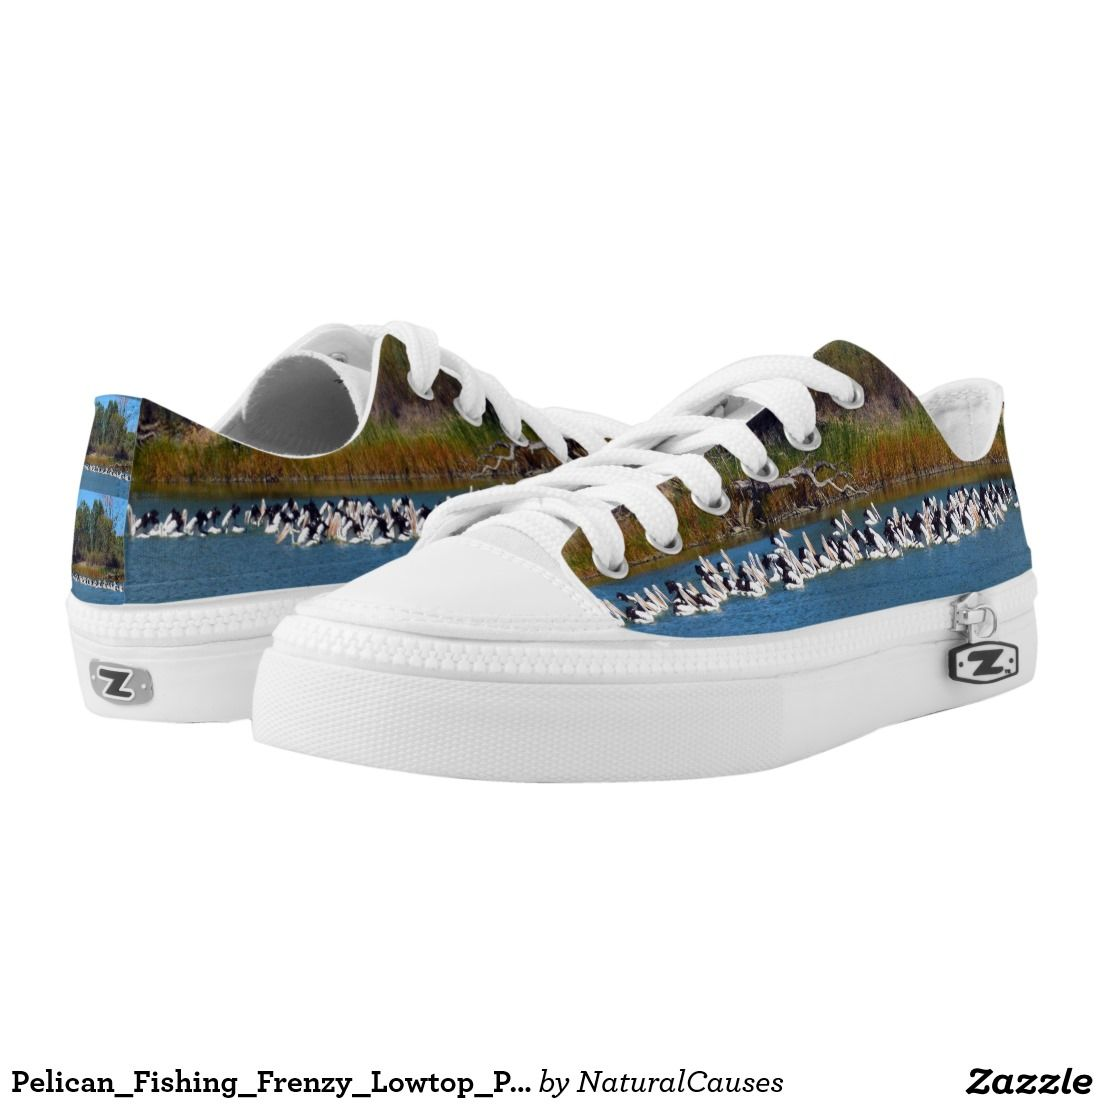 Pelican_Fishing_Frenzy_Lowtop_Printed_Zipz_Shoes. Printed Shoes